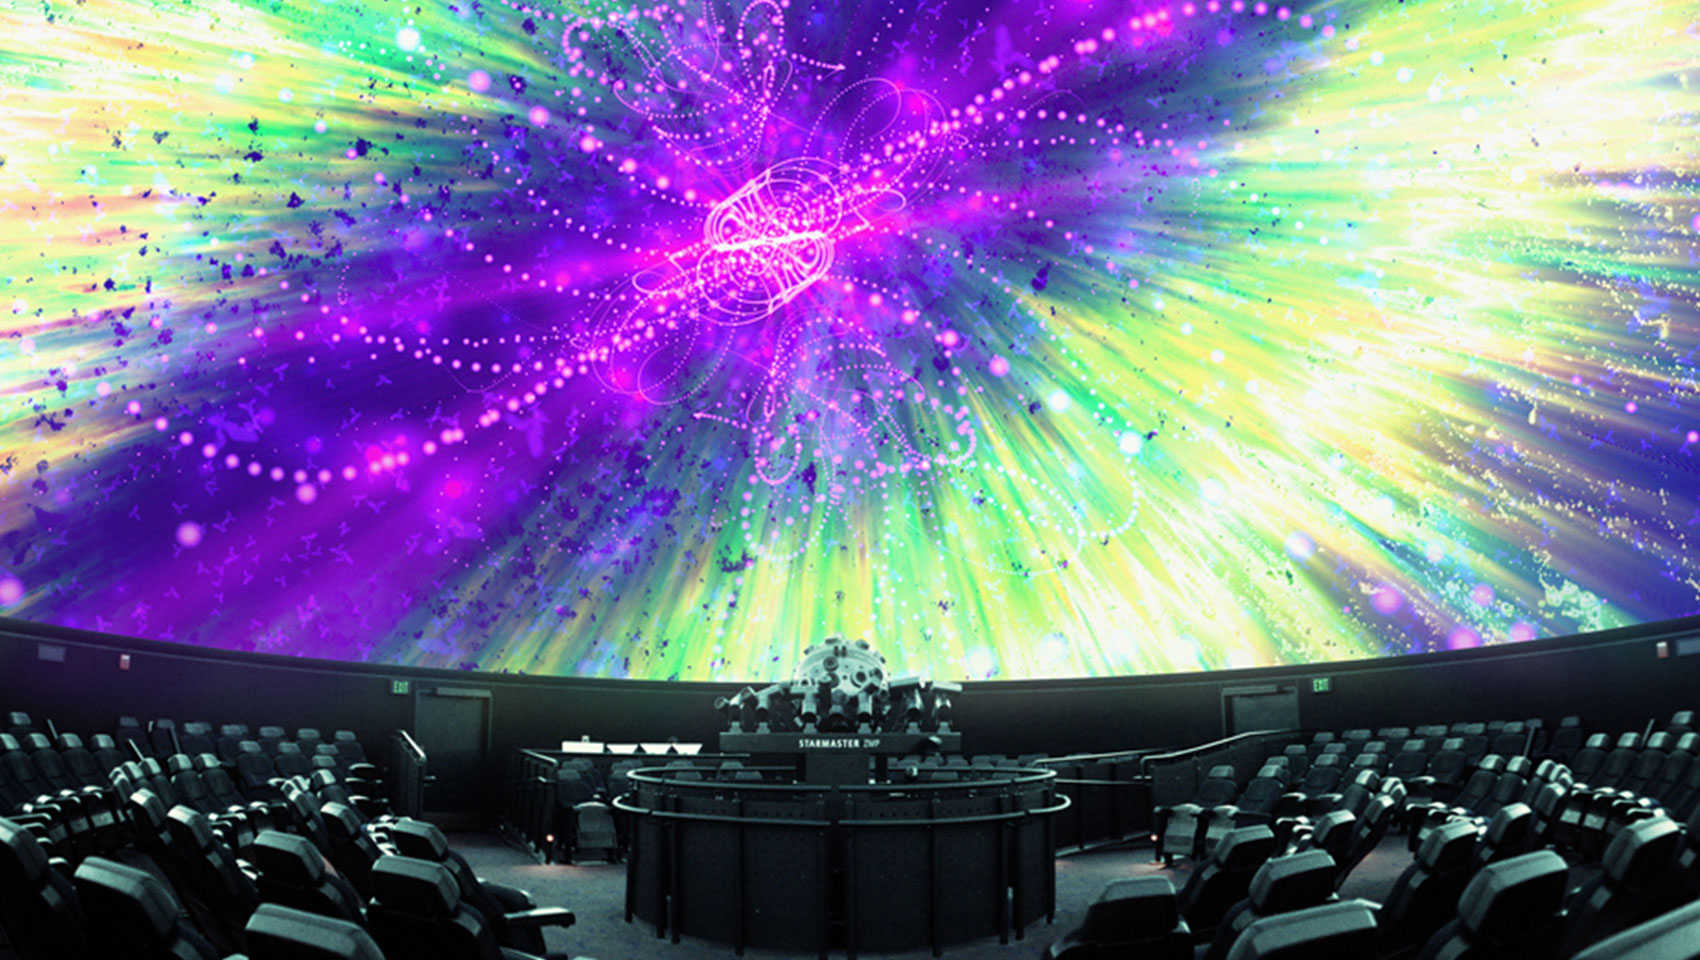 Museum of Science Light Show in planetarium dome projecting colorful lights